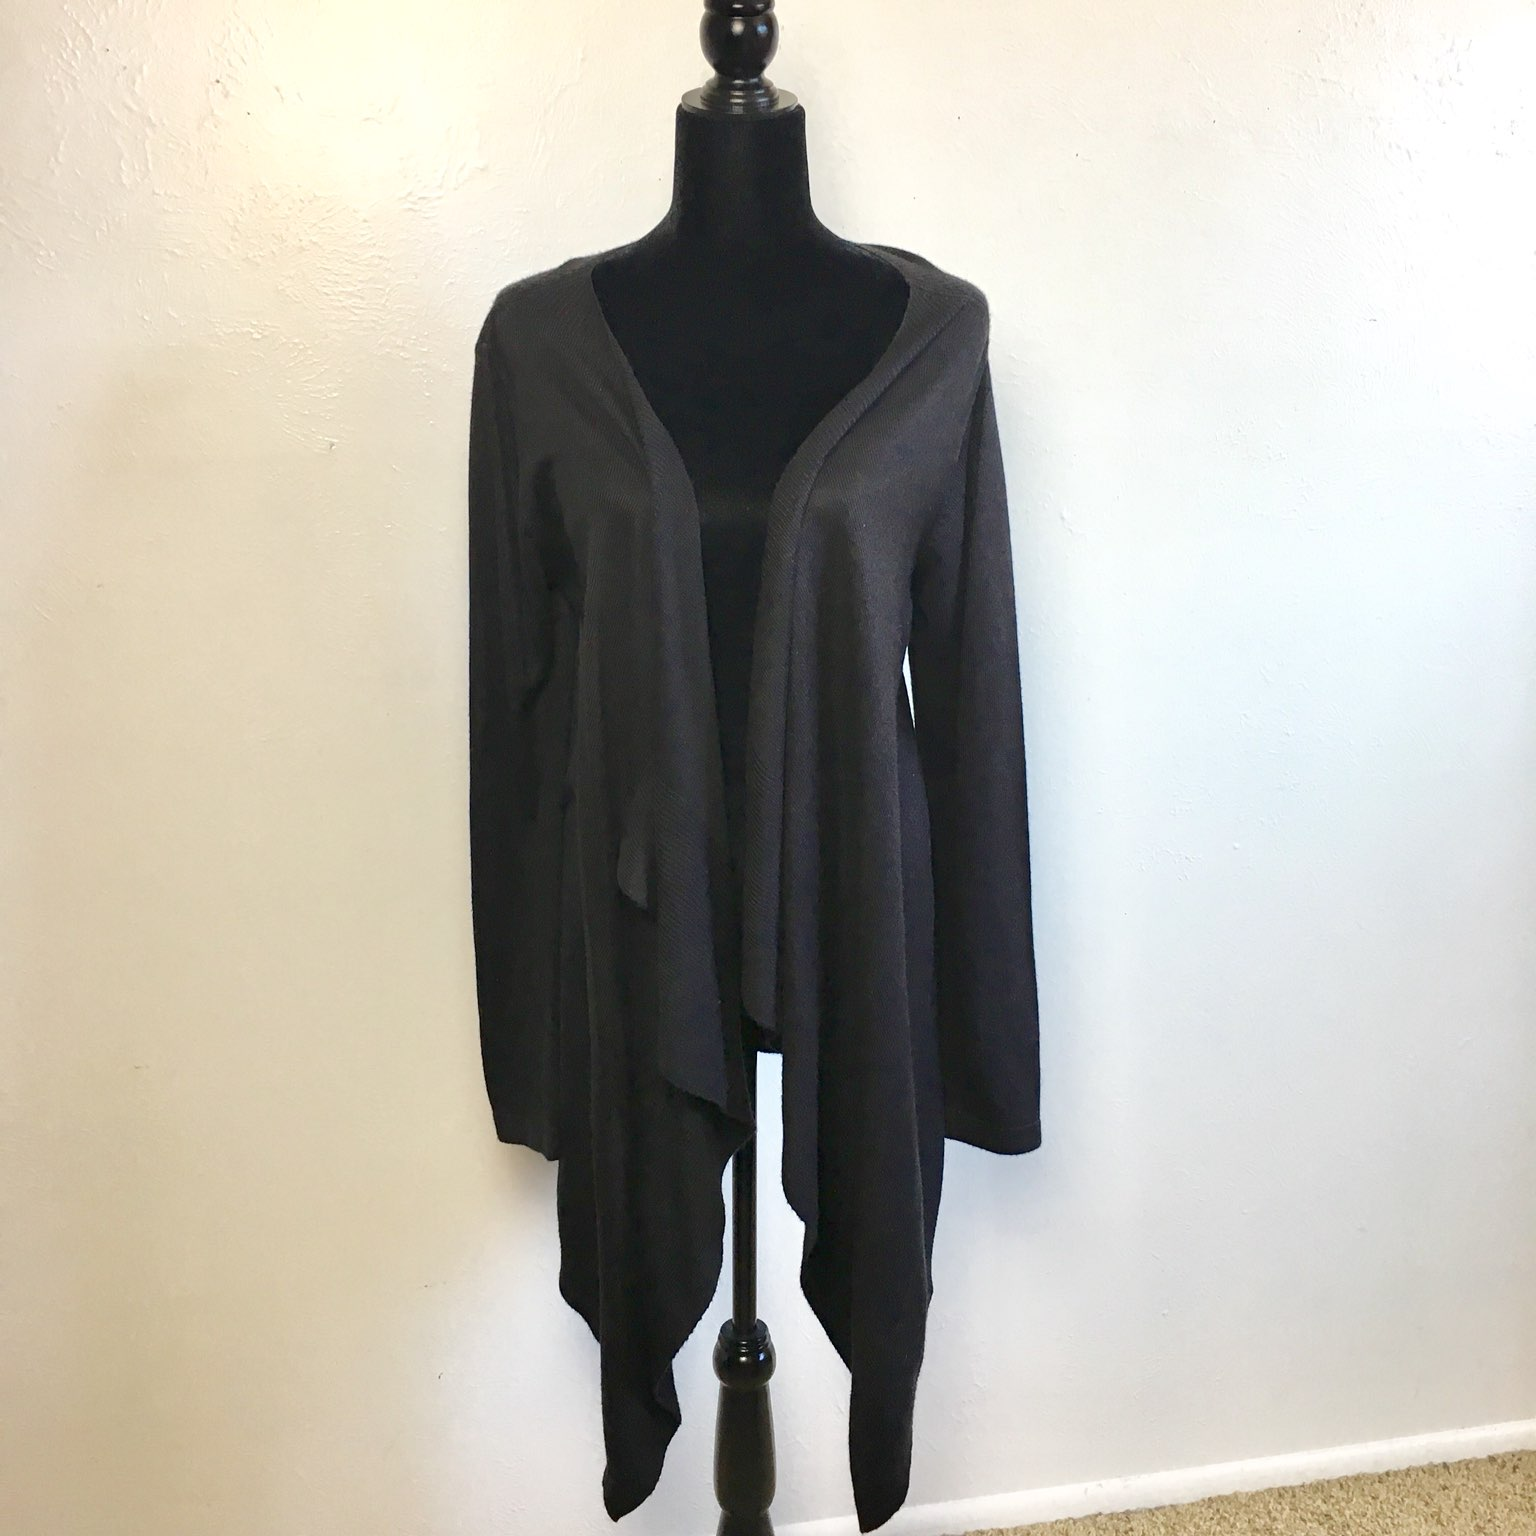 Lightweight Black Cardigan - Mercari: BUY & SELL THINGS YOU LOVE